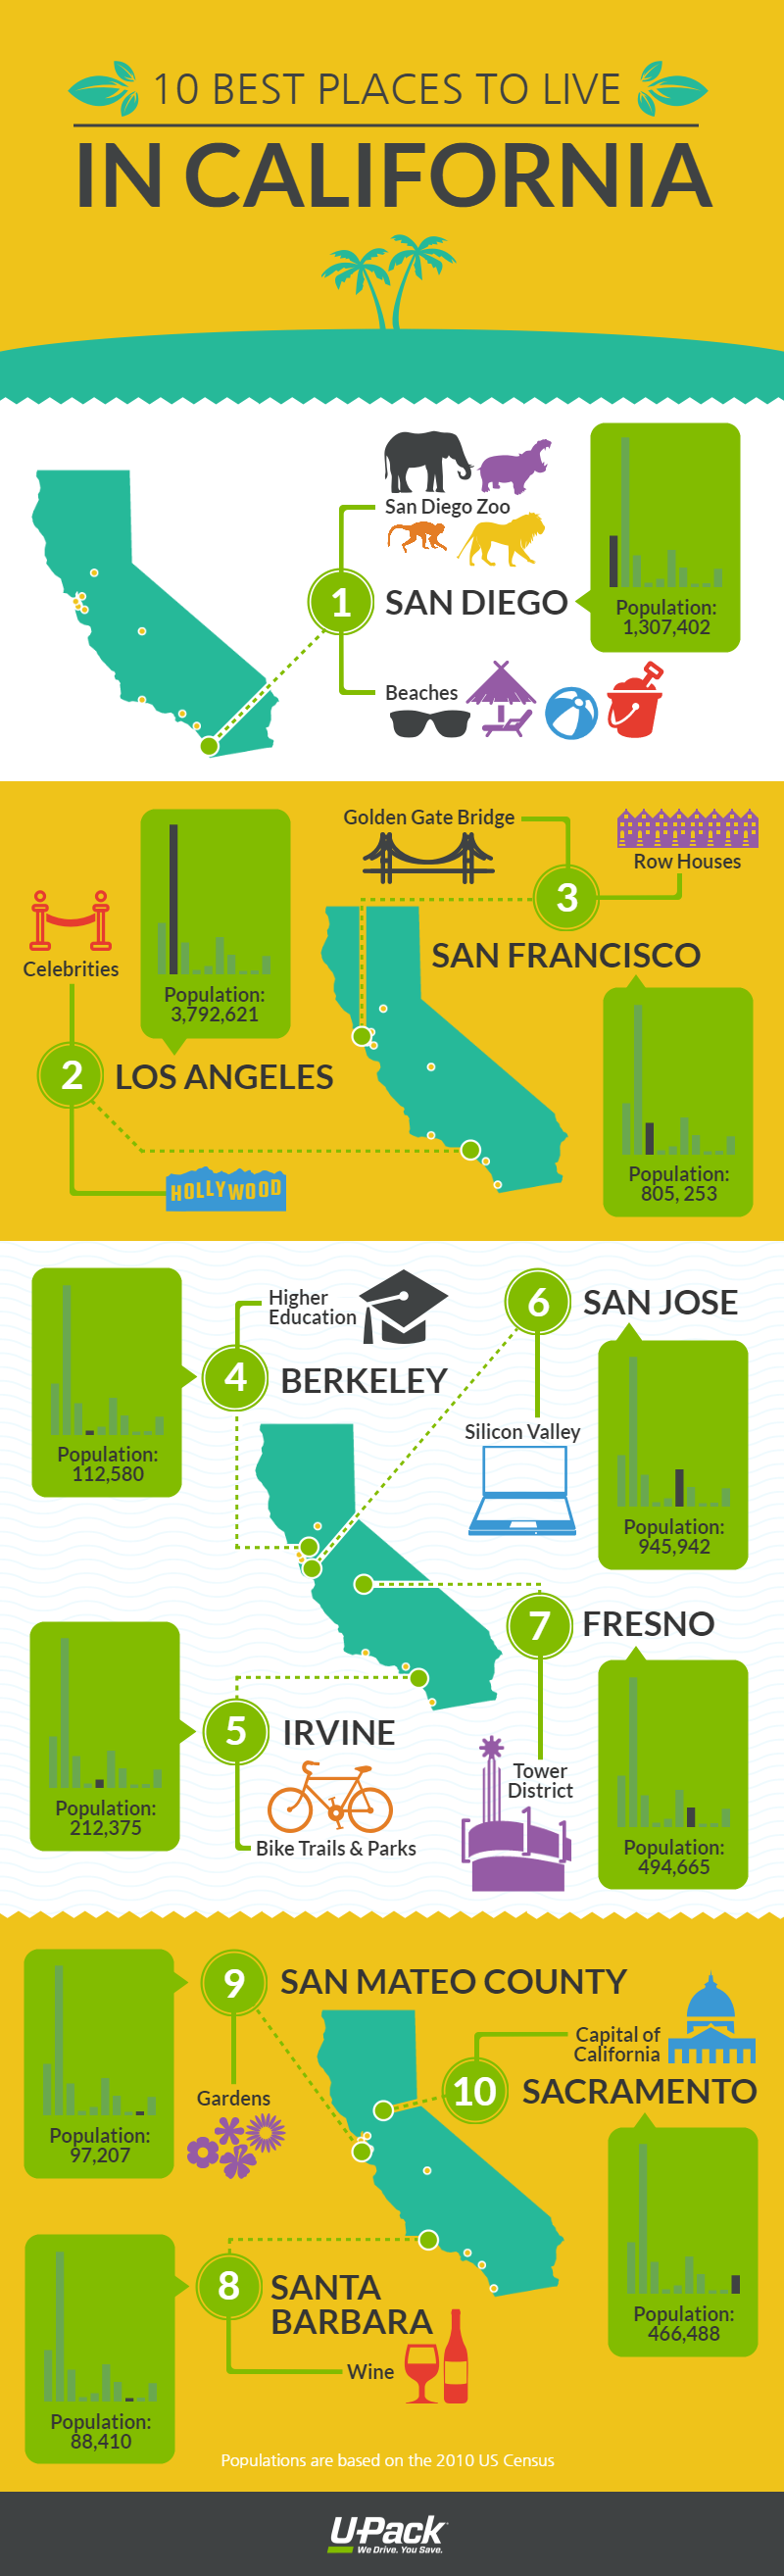 10 best places to live in california u pack for Good places to live in california